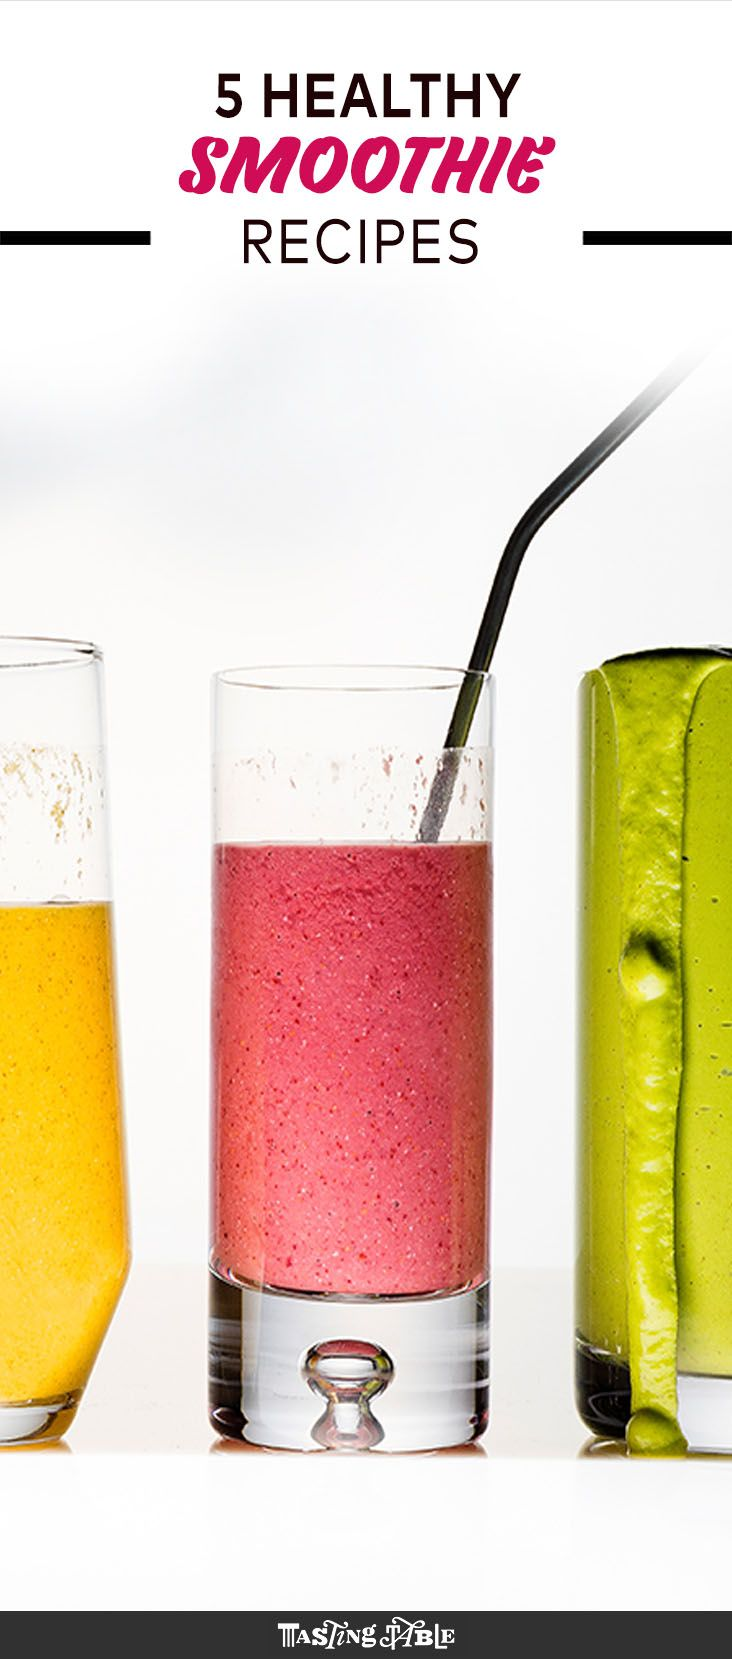 Learn the ins and outs of making a healthy smoothie you won't get tired of, then perfect your skills with five vibrant recipes—one for each day of the workweek.